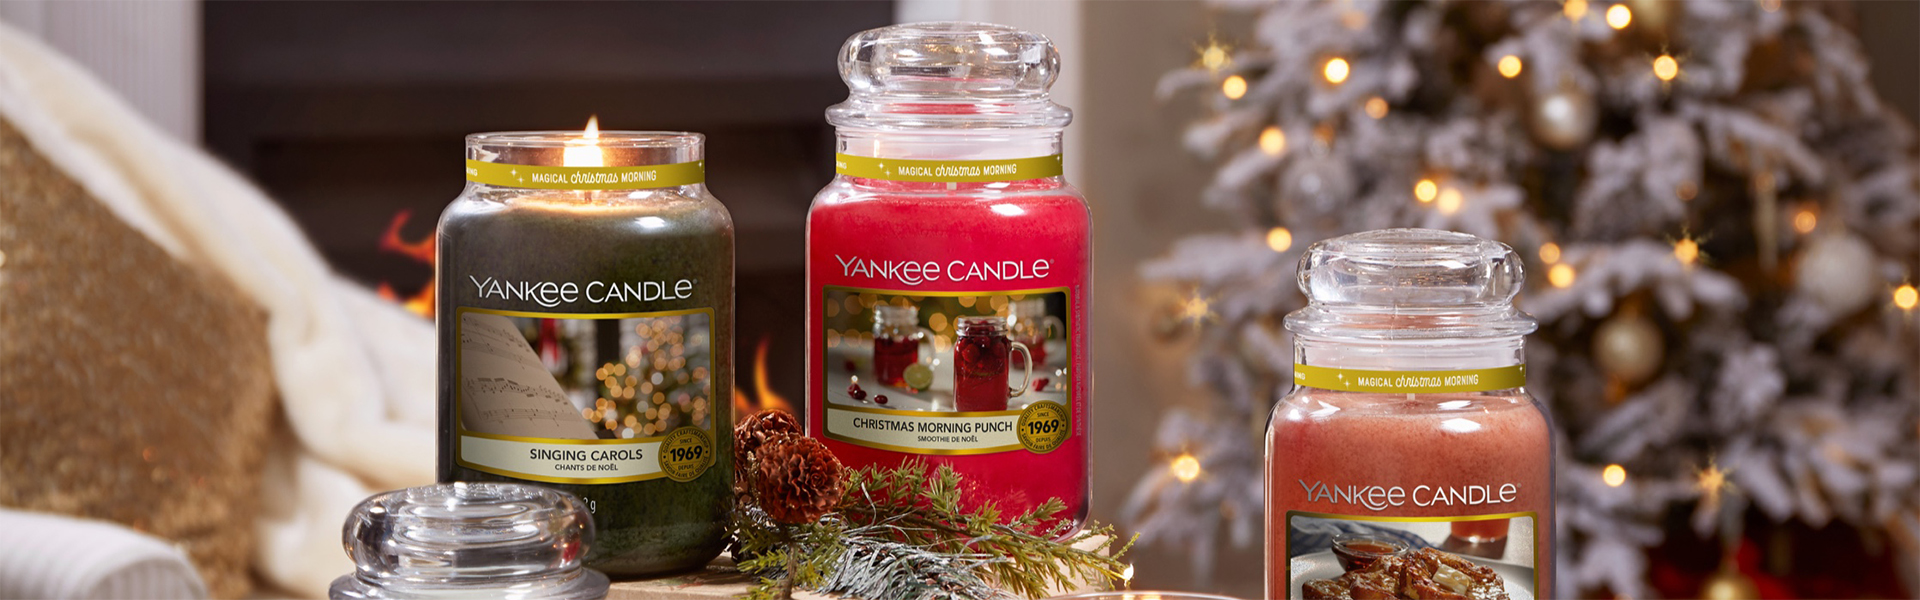 "<p data-aos=fade-up style=""text-align:center""><strong>Yankee Candle</strong></p>